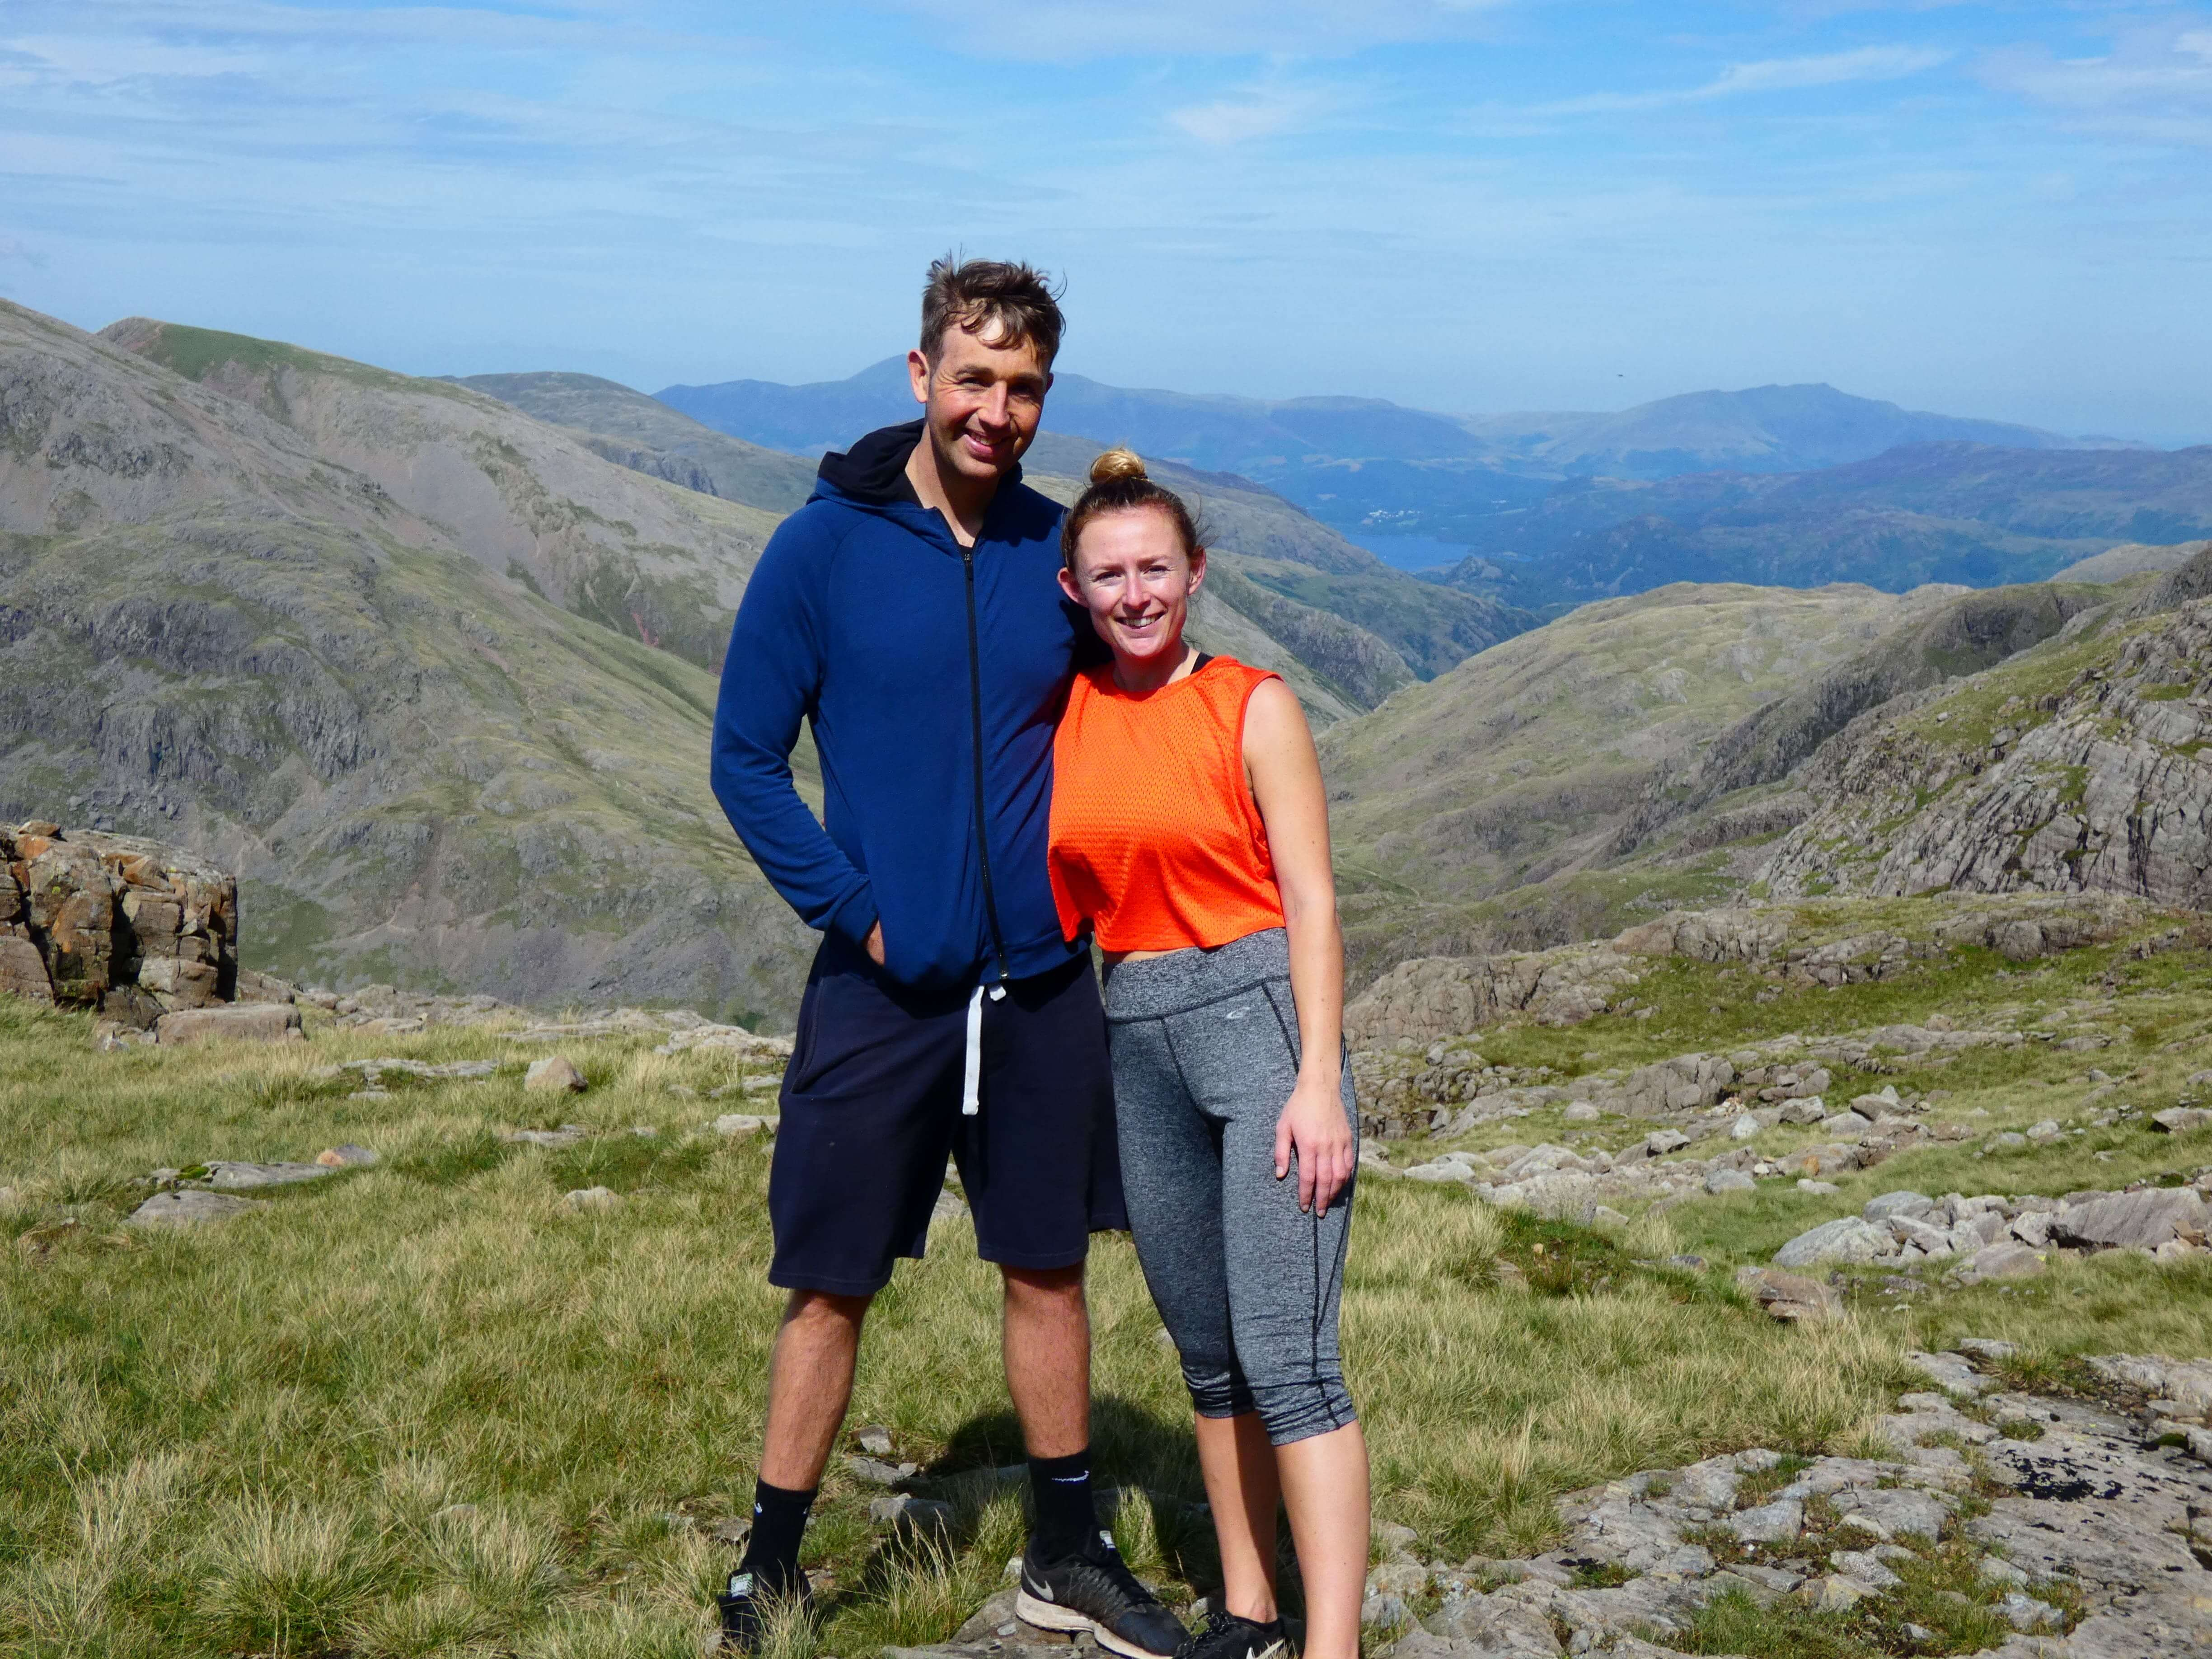 finding the scafell pike mountain